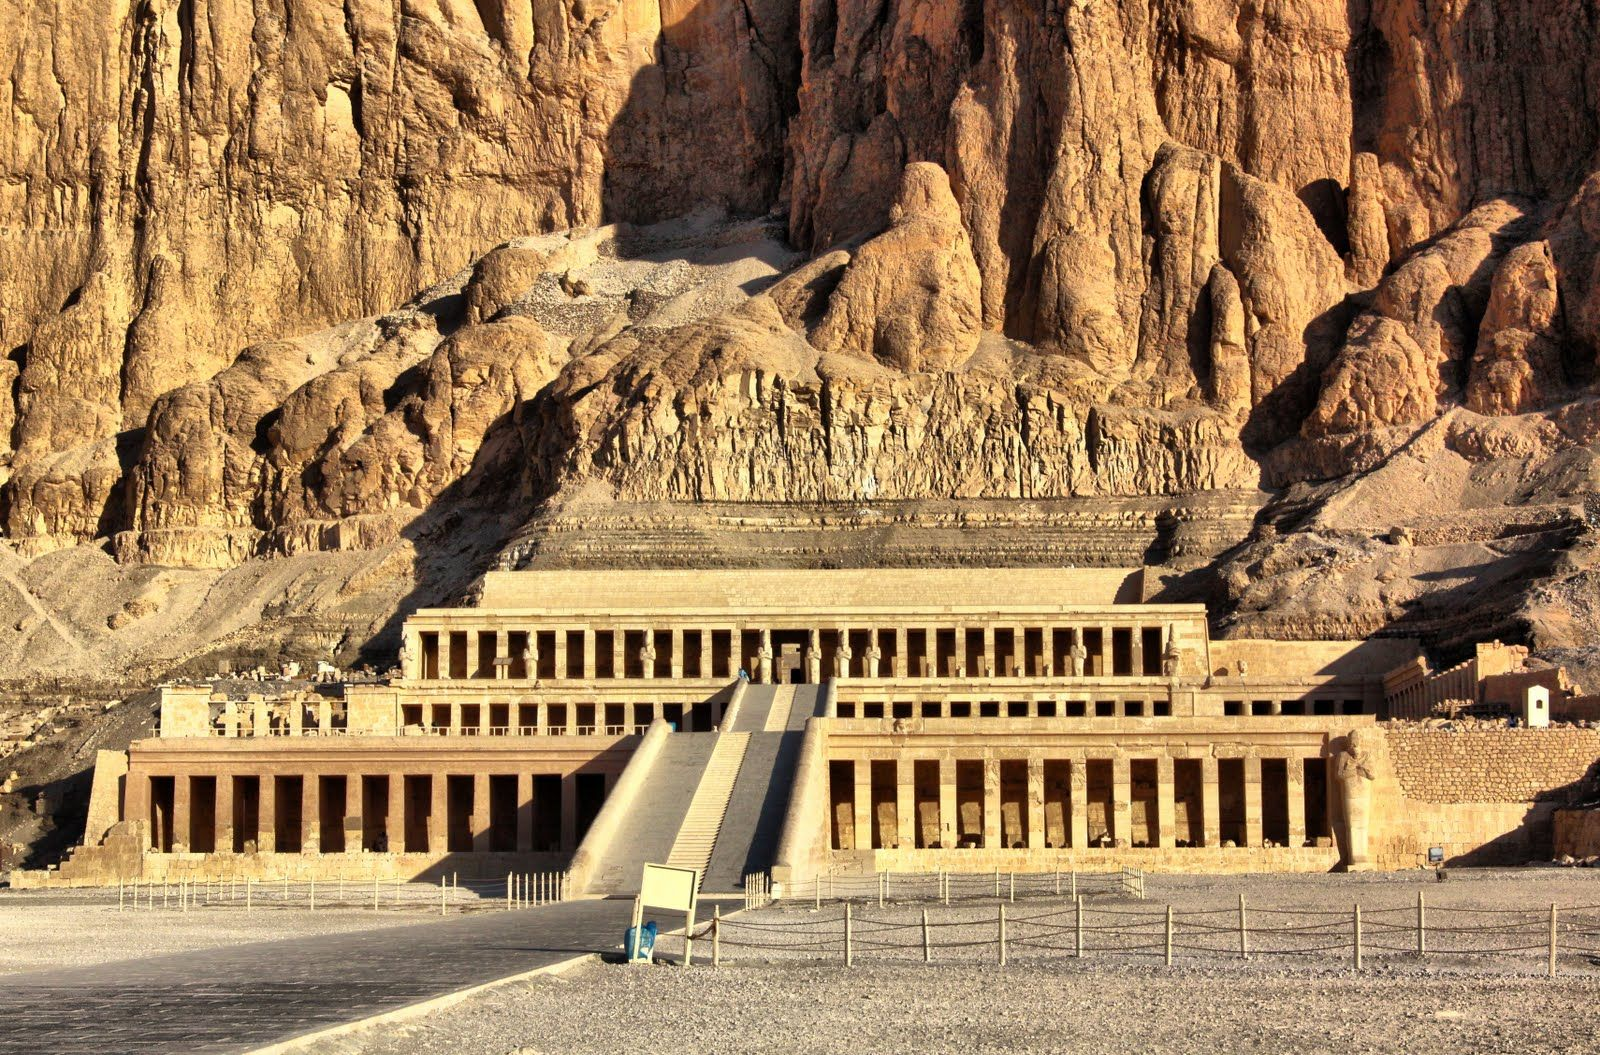 Full-Day Tour To East & West Banks Of Luxor With Lunch